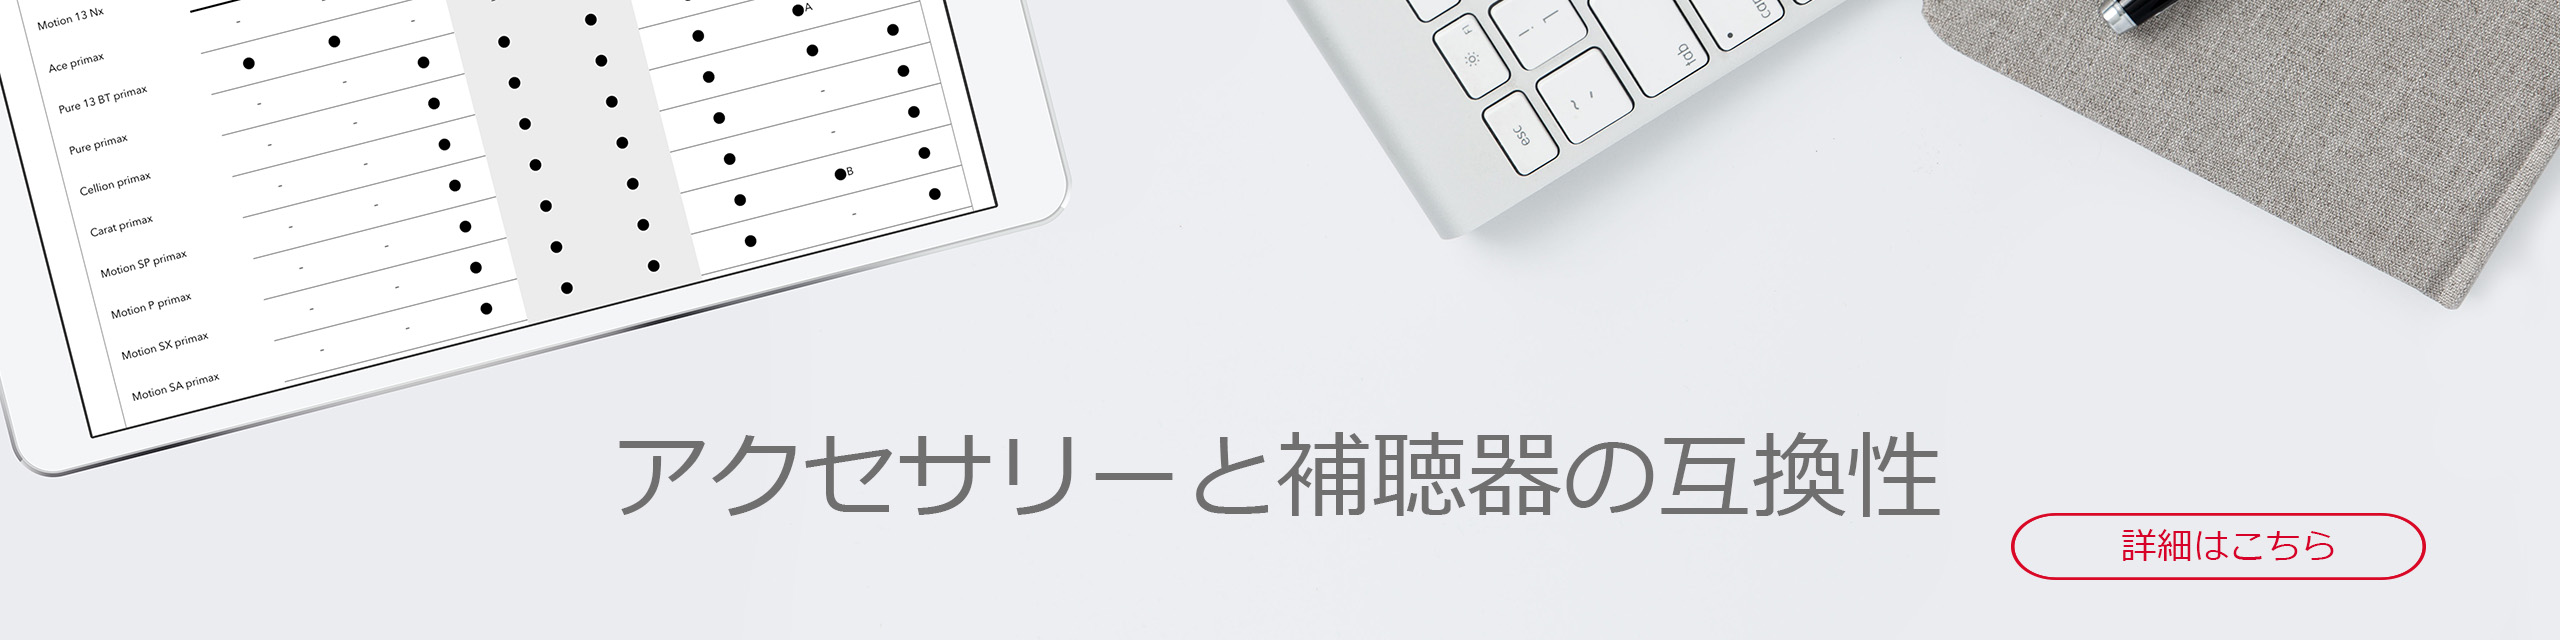 JP_Products-tables-teaser_accessories-and-hearingaid-compatibility_2560x640px